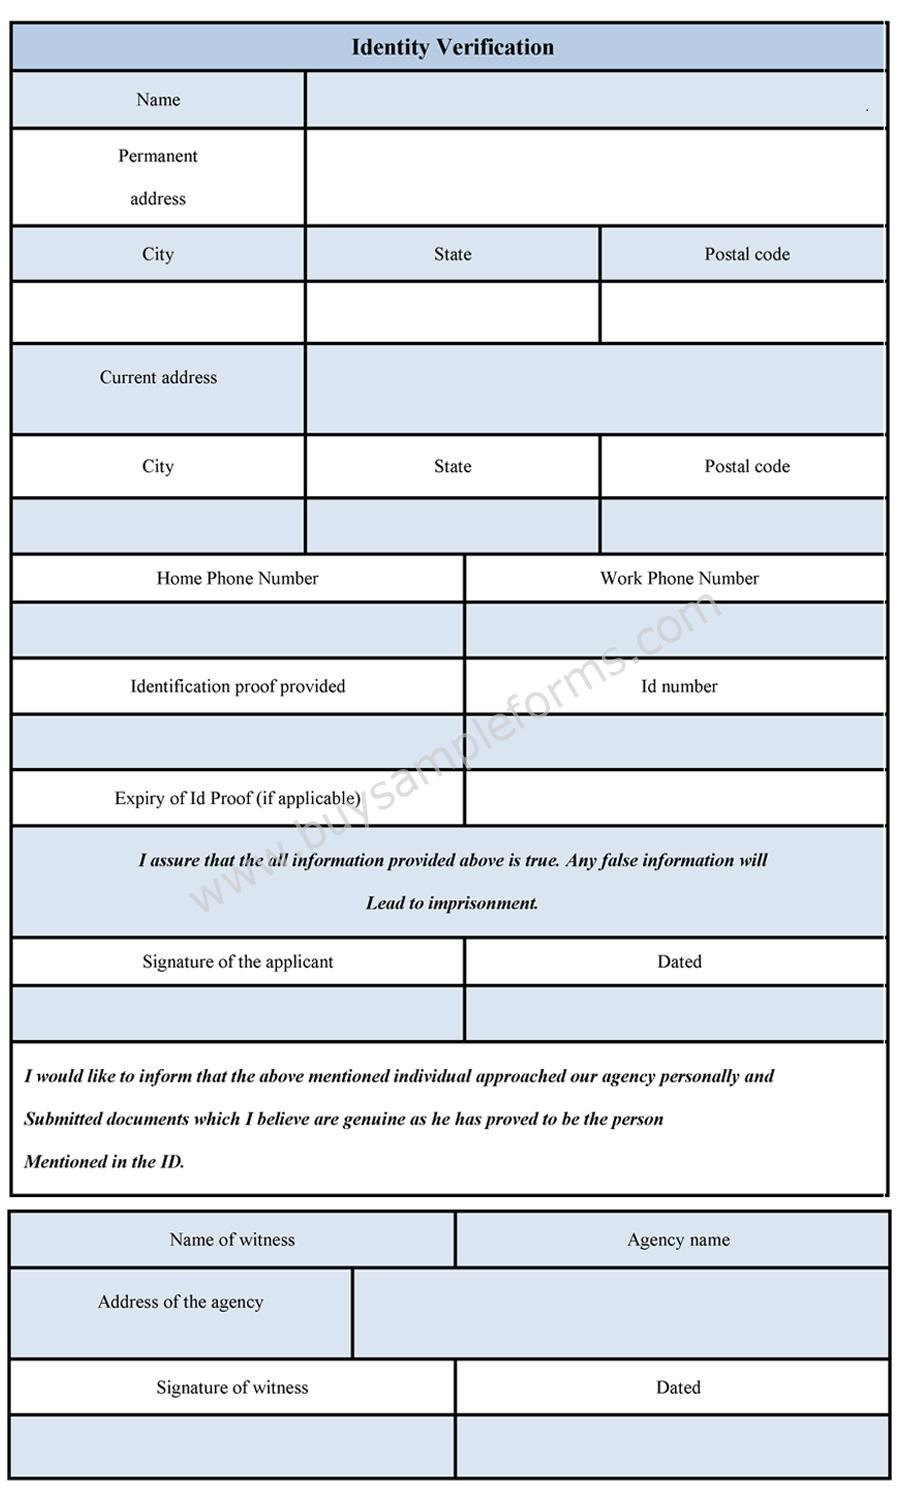 Identity Verification Form | Identification Verification Form ...